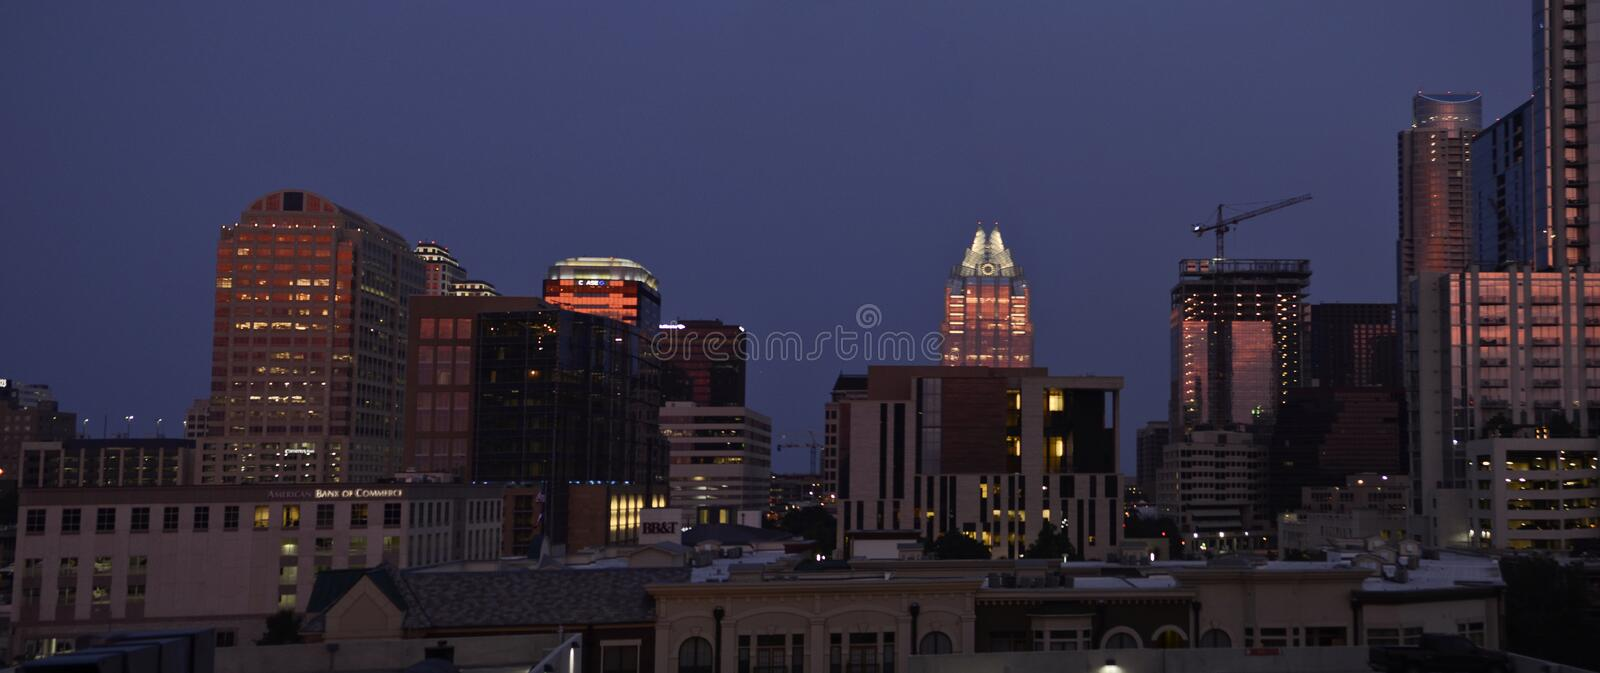 Austin Texas at night royalty free stock photography